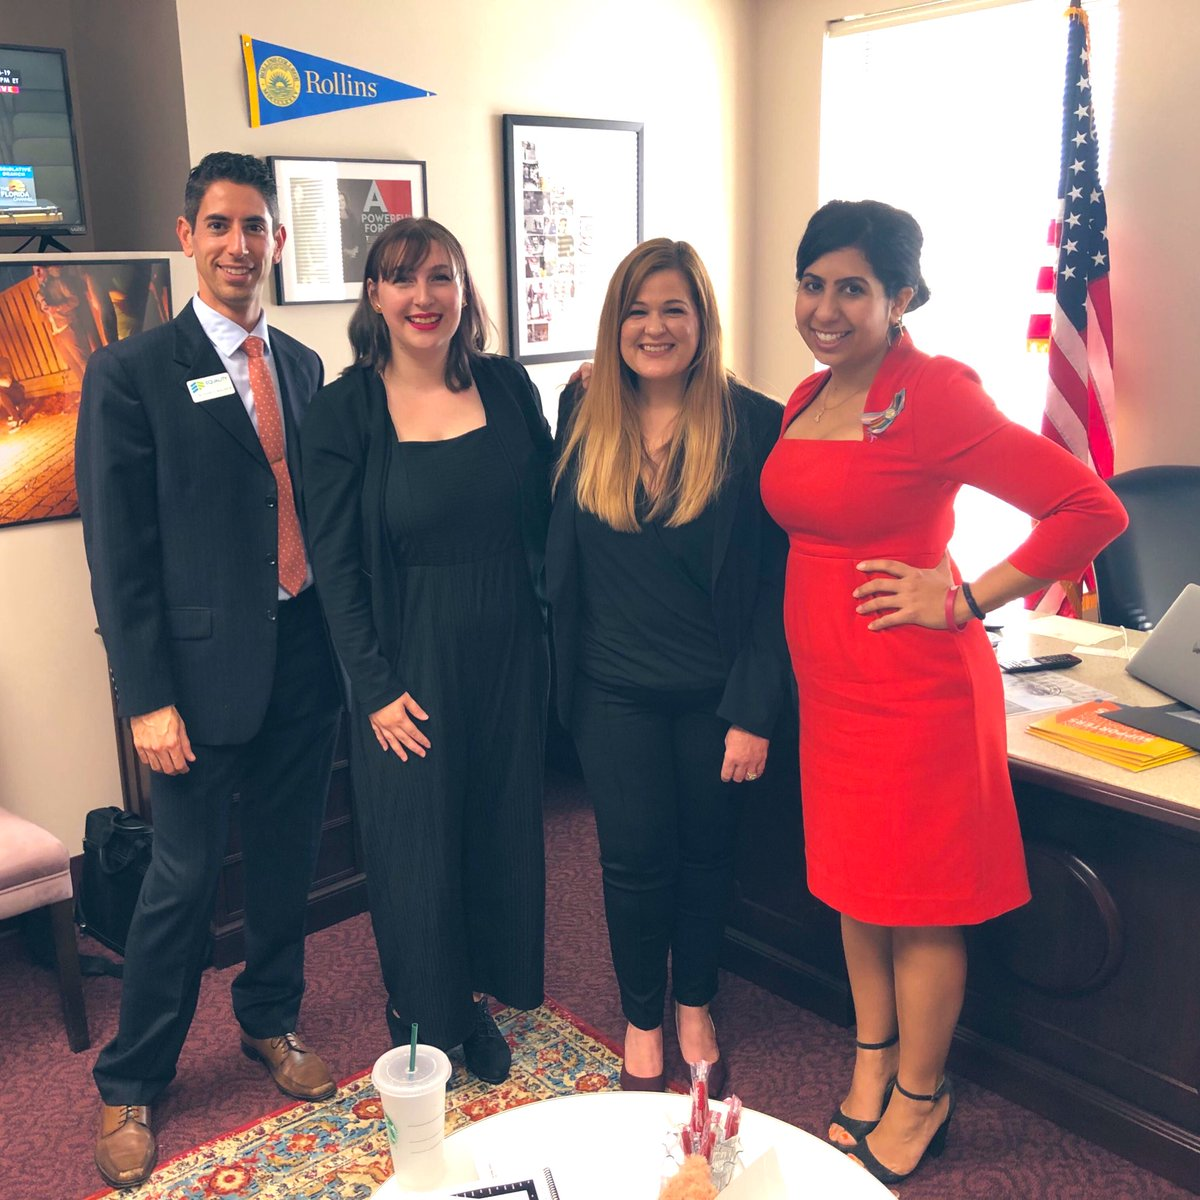 Met Monica yesterday— the incredible Brevard teacher who was fired at her publicly funded voucher private school for being gay. She is sharing her story far & wide, advocating for the passage of both #HB45 and @FLCompetes! We got your back, Monica. #Equality